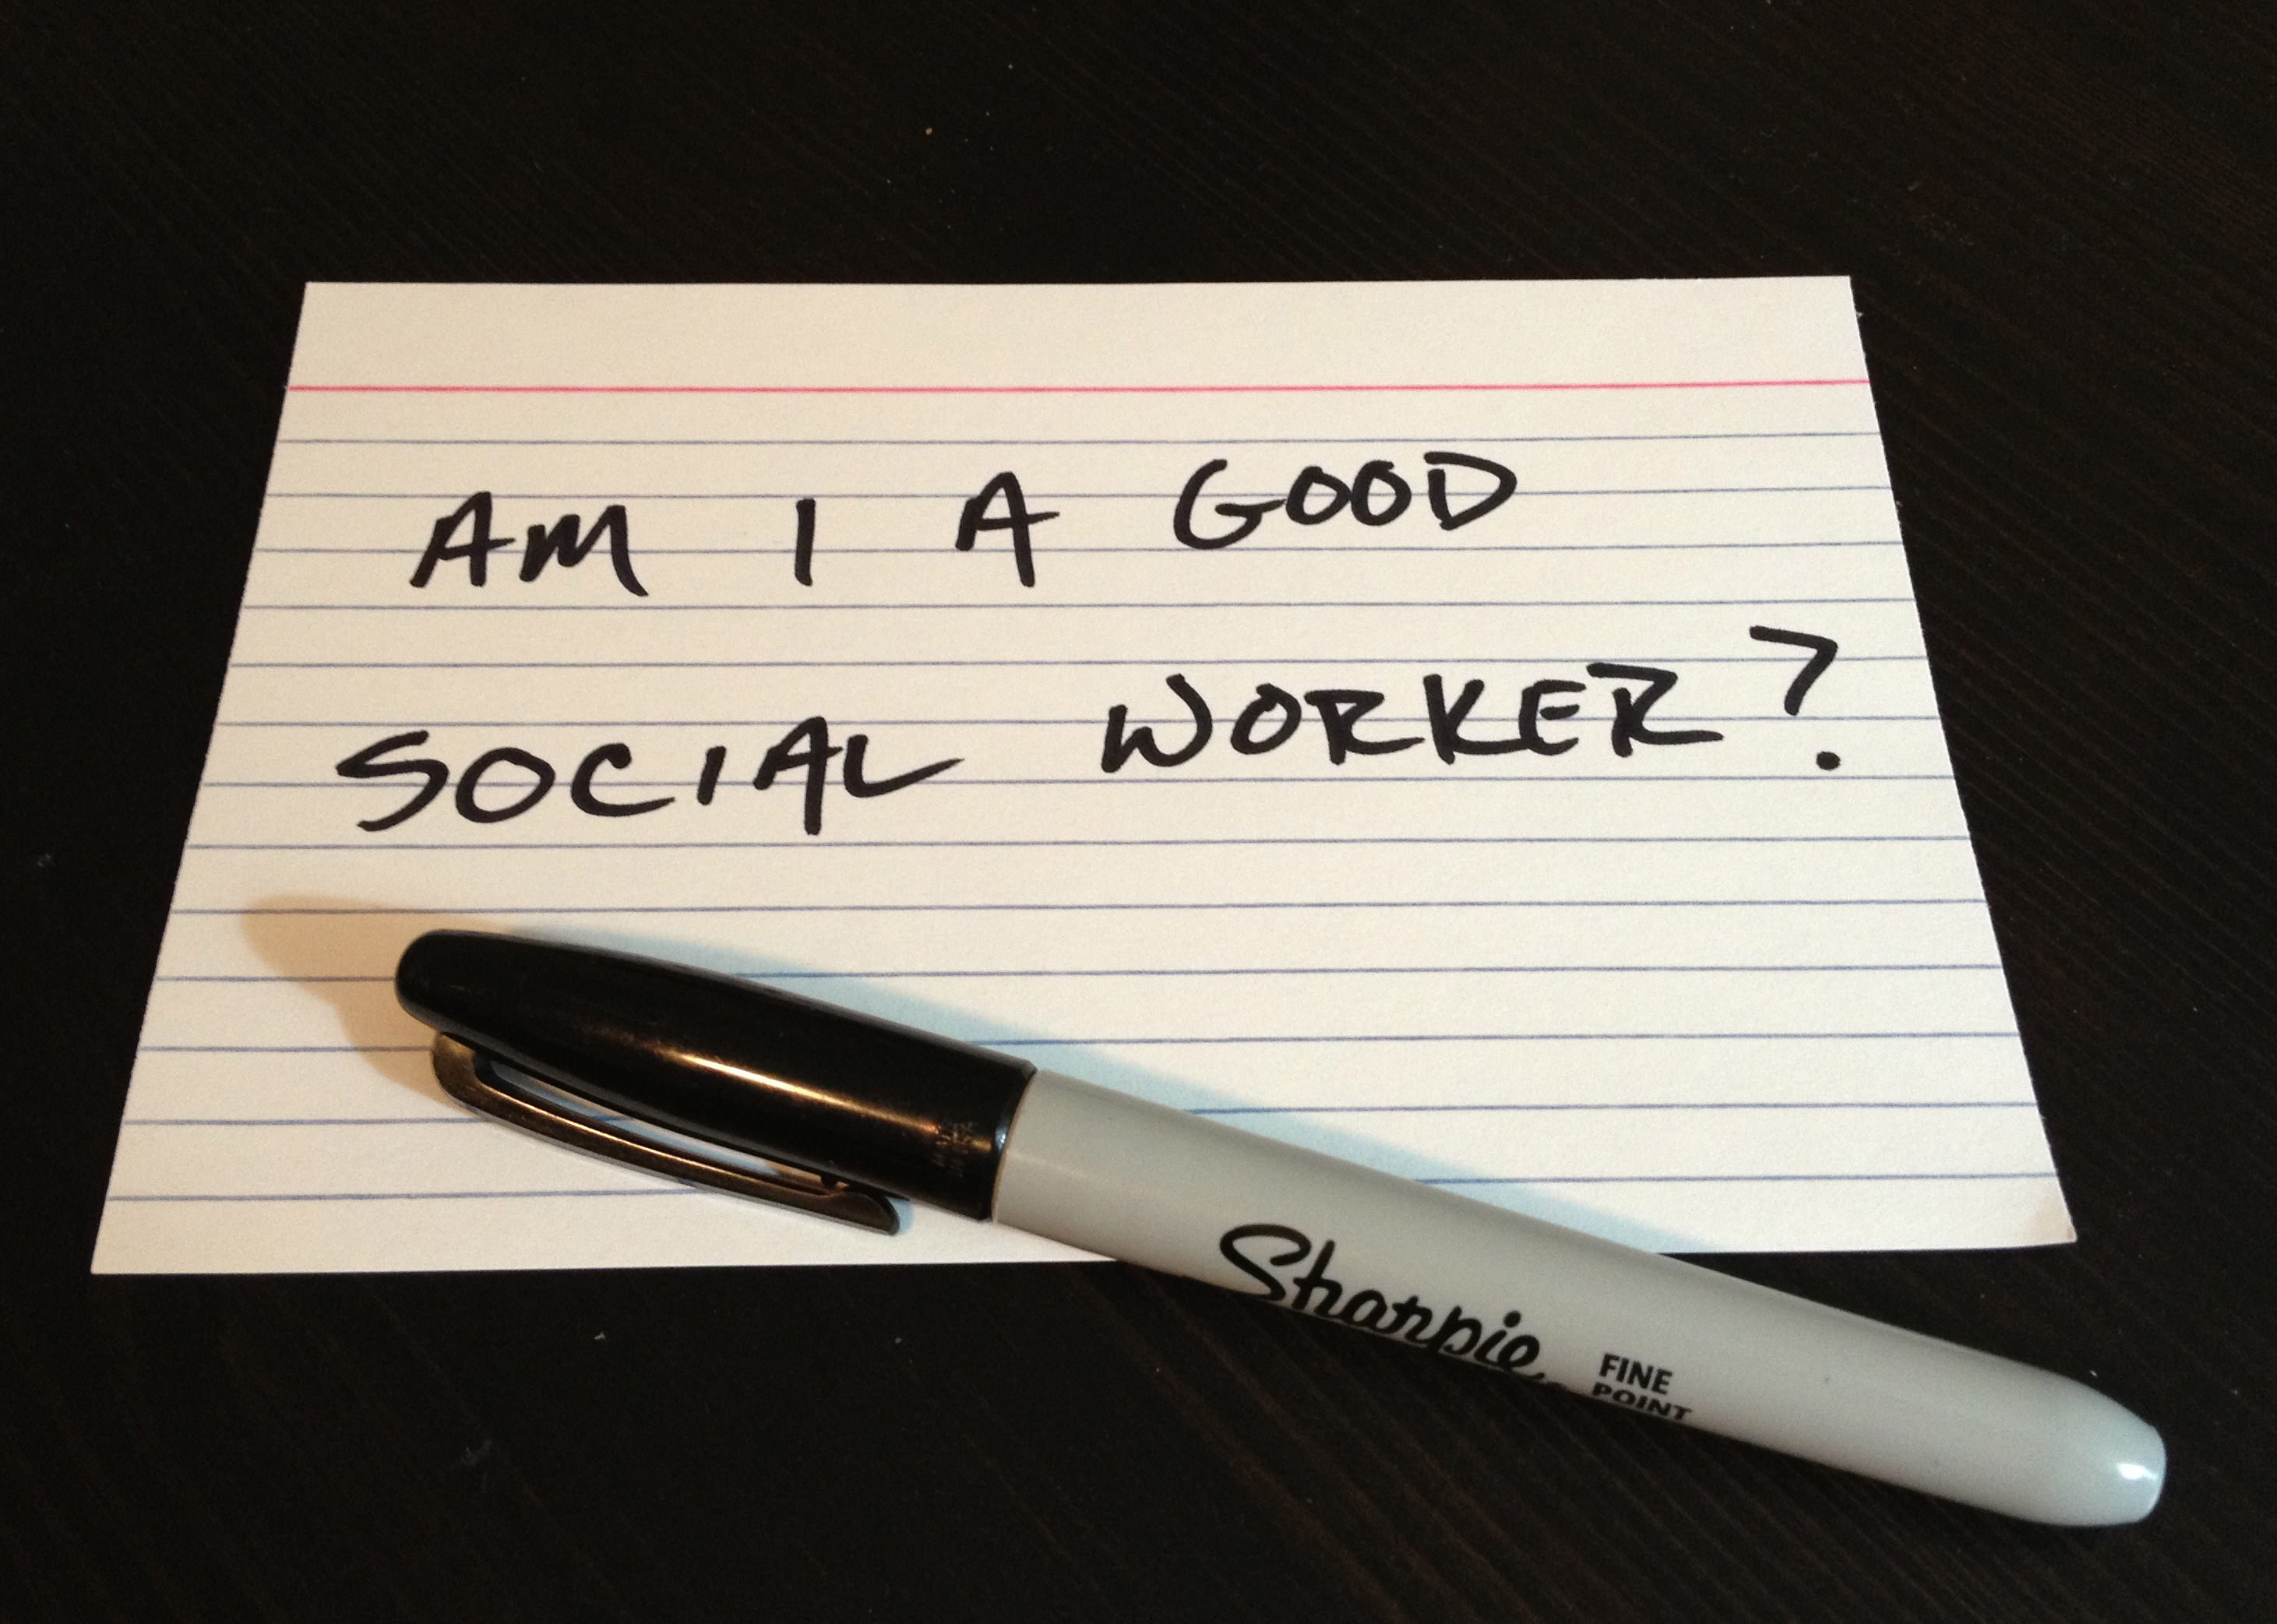 4160912541b19 Am I A Good Social Worker?"